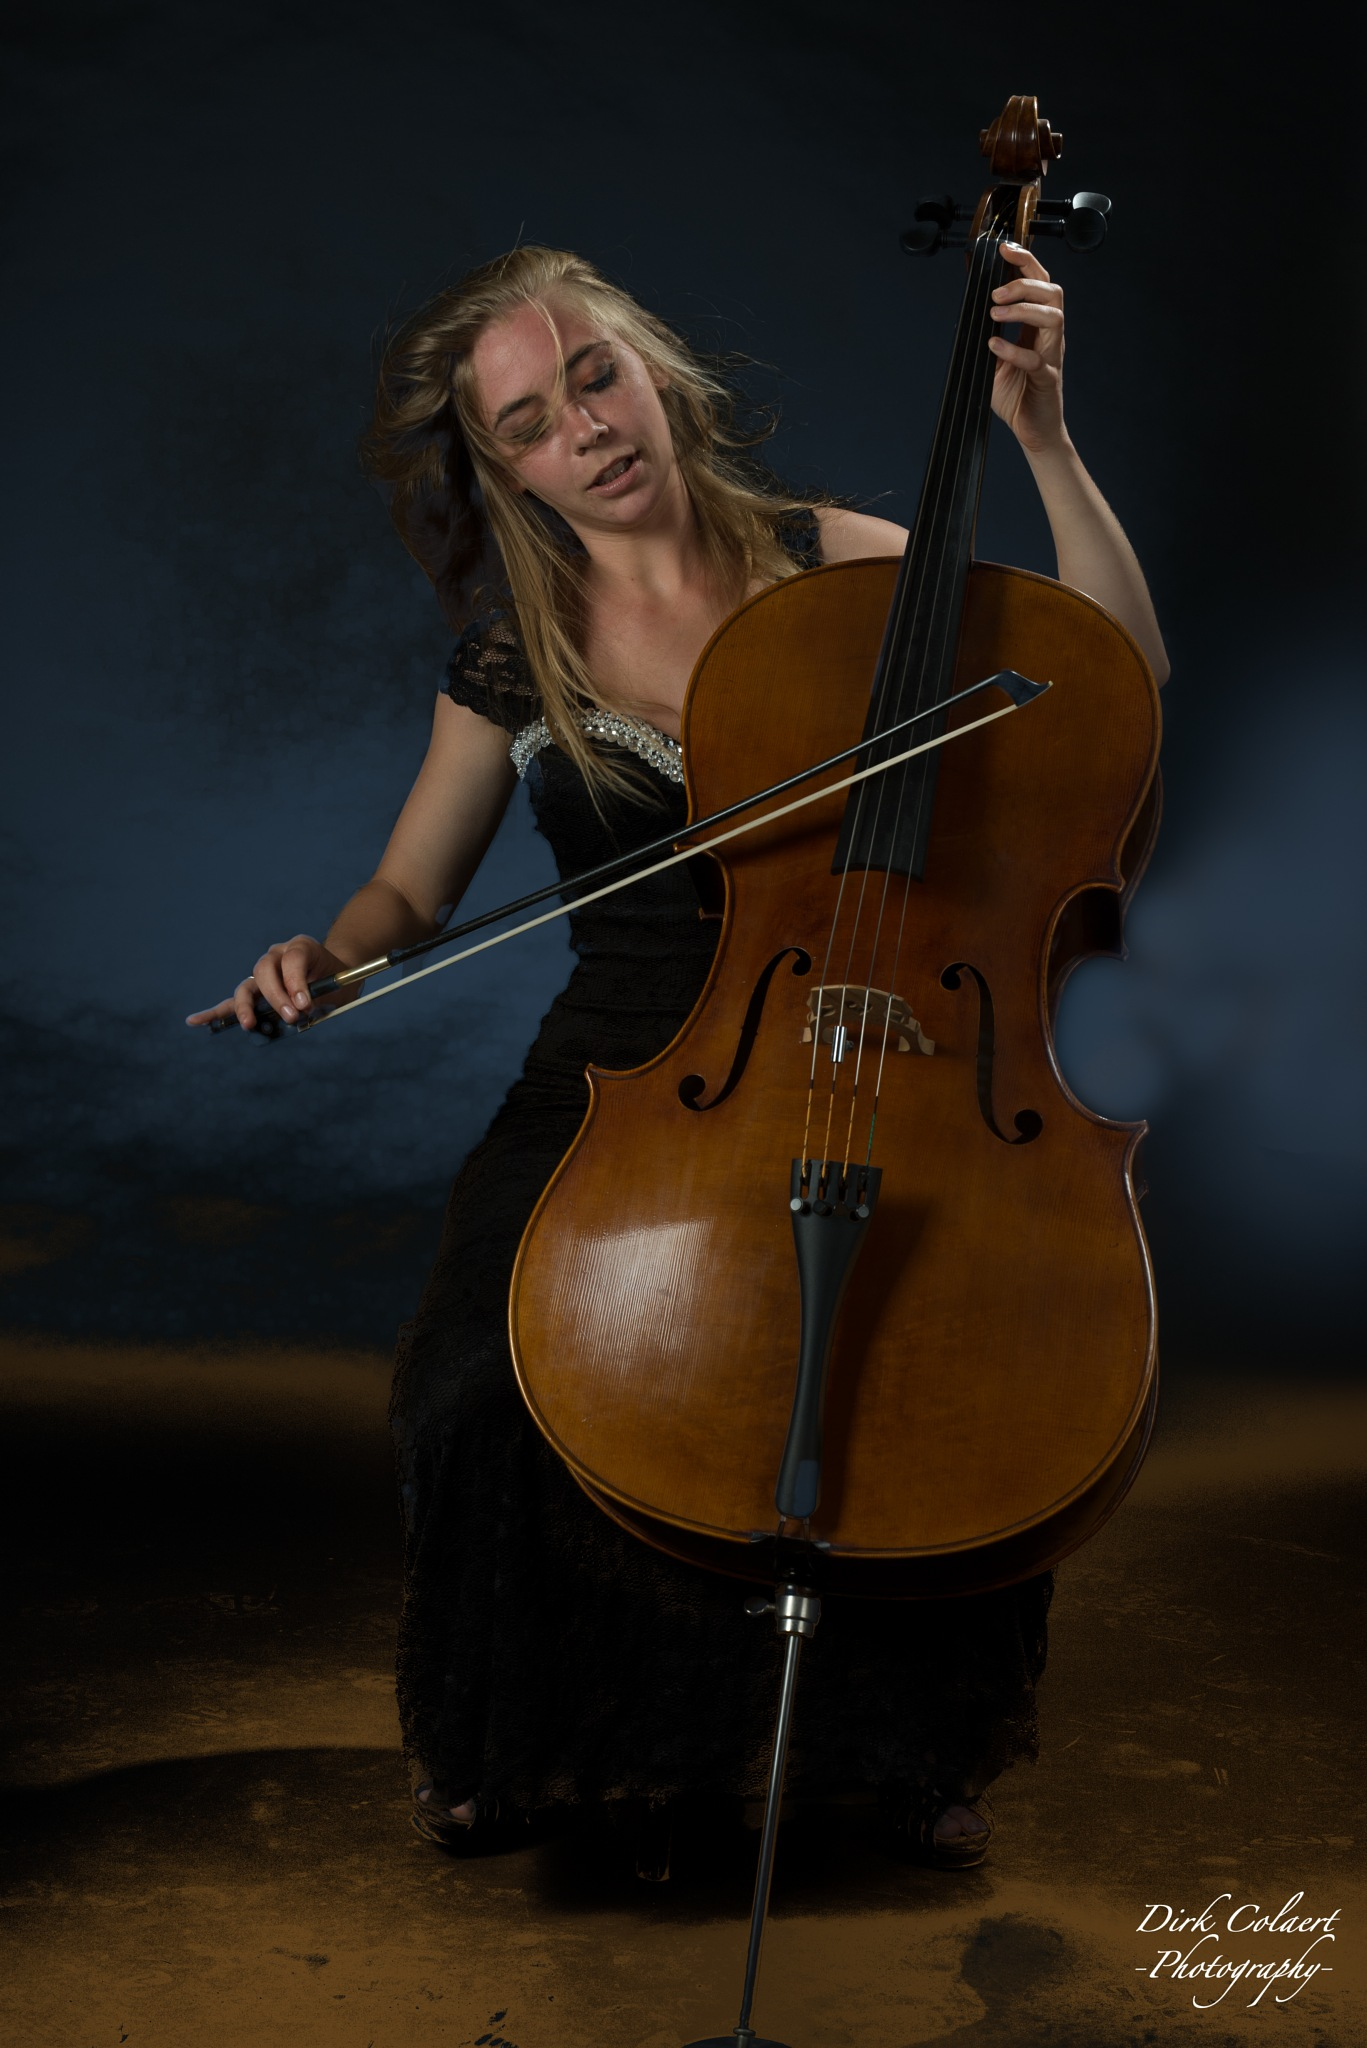 cello by Dirk Colaert